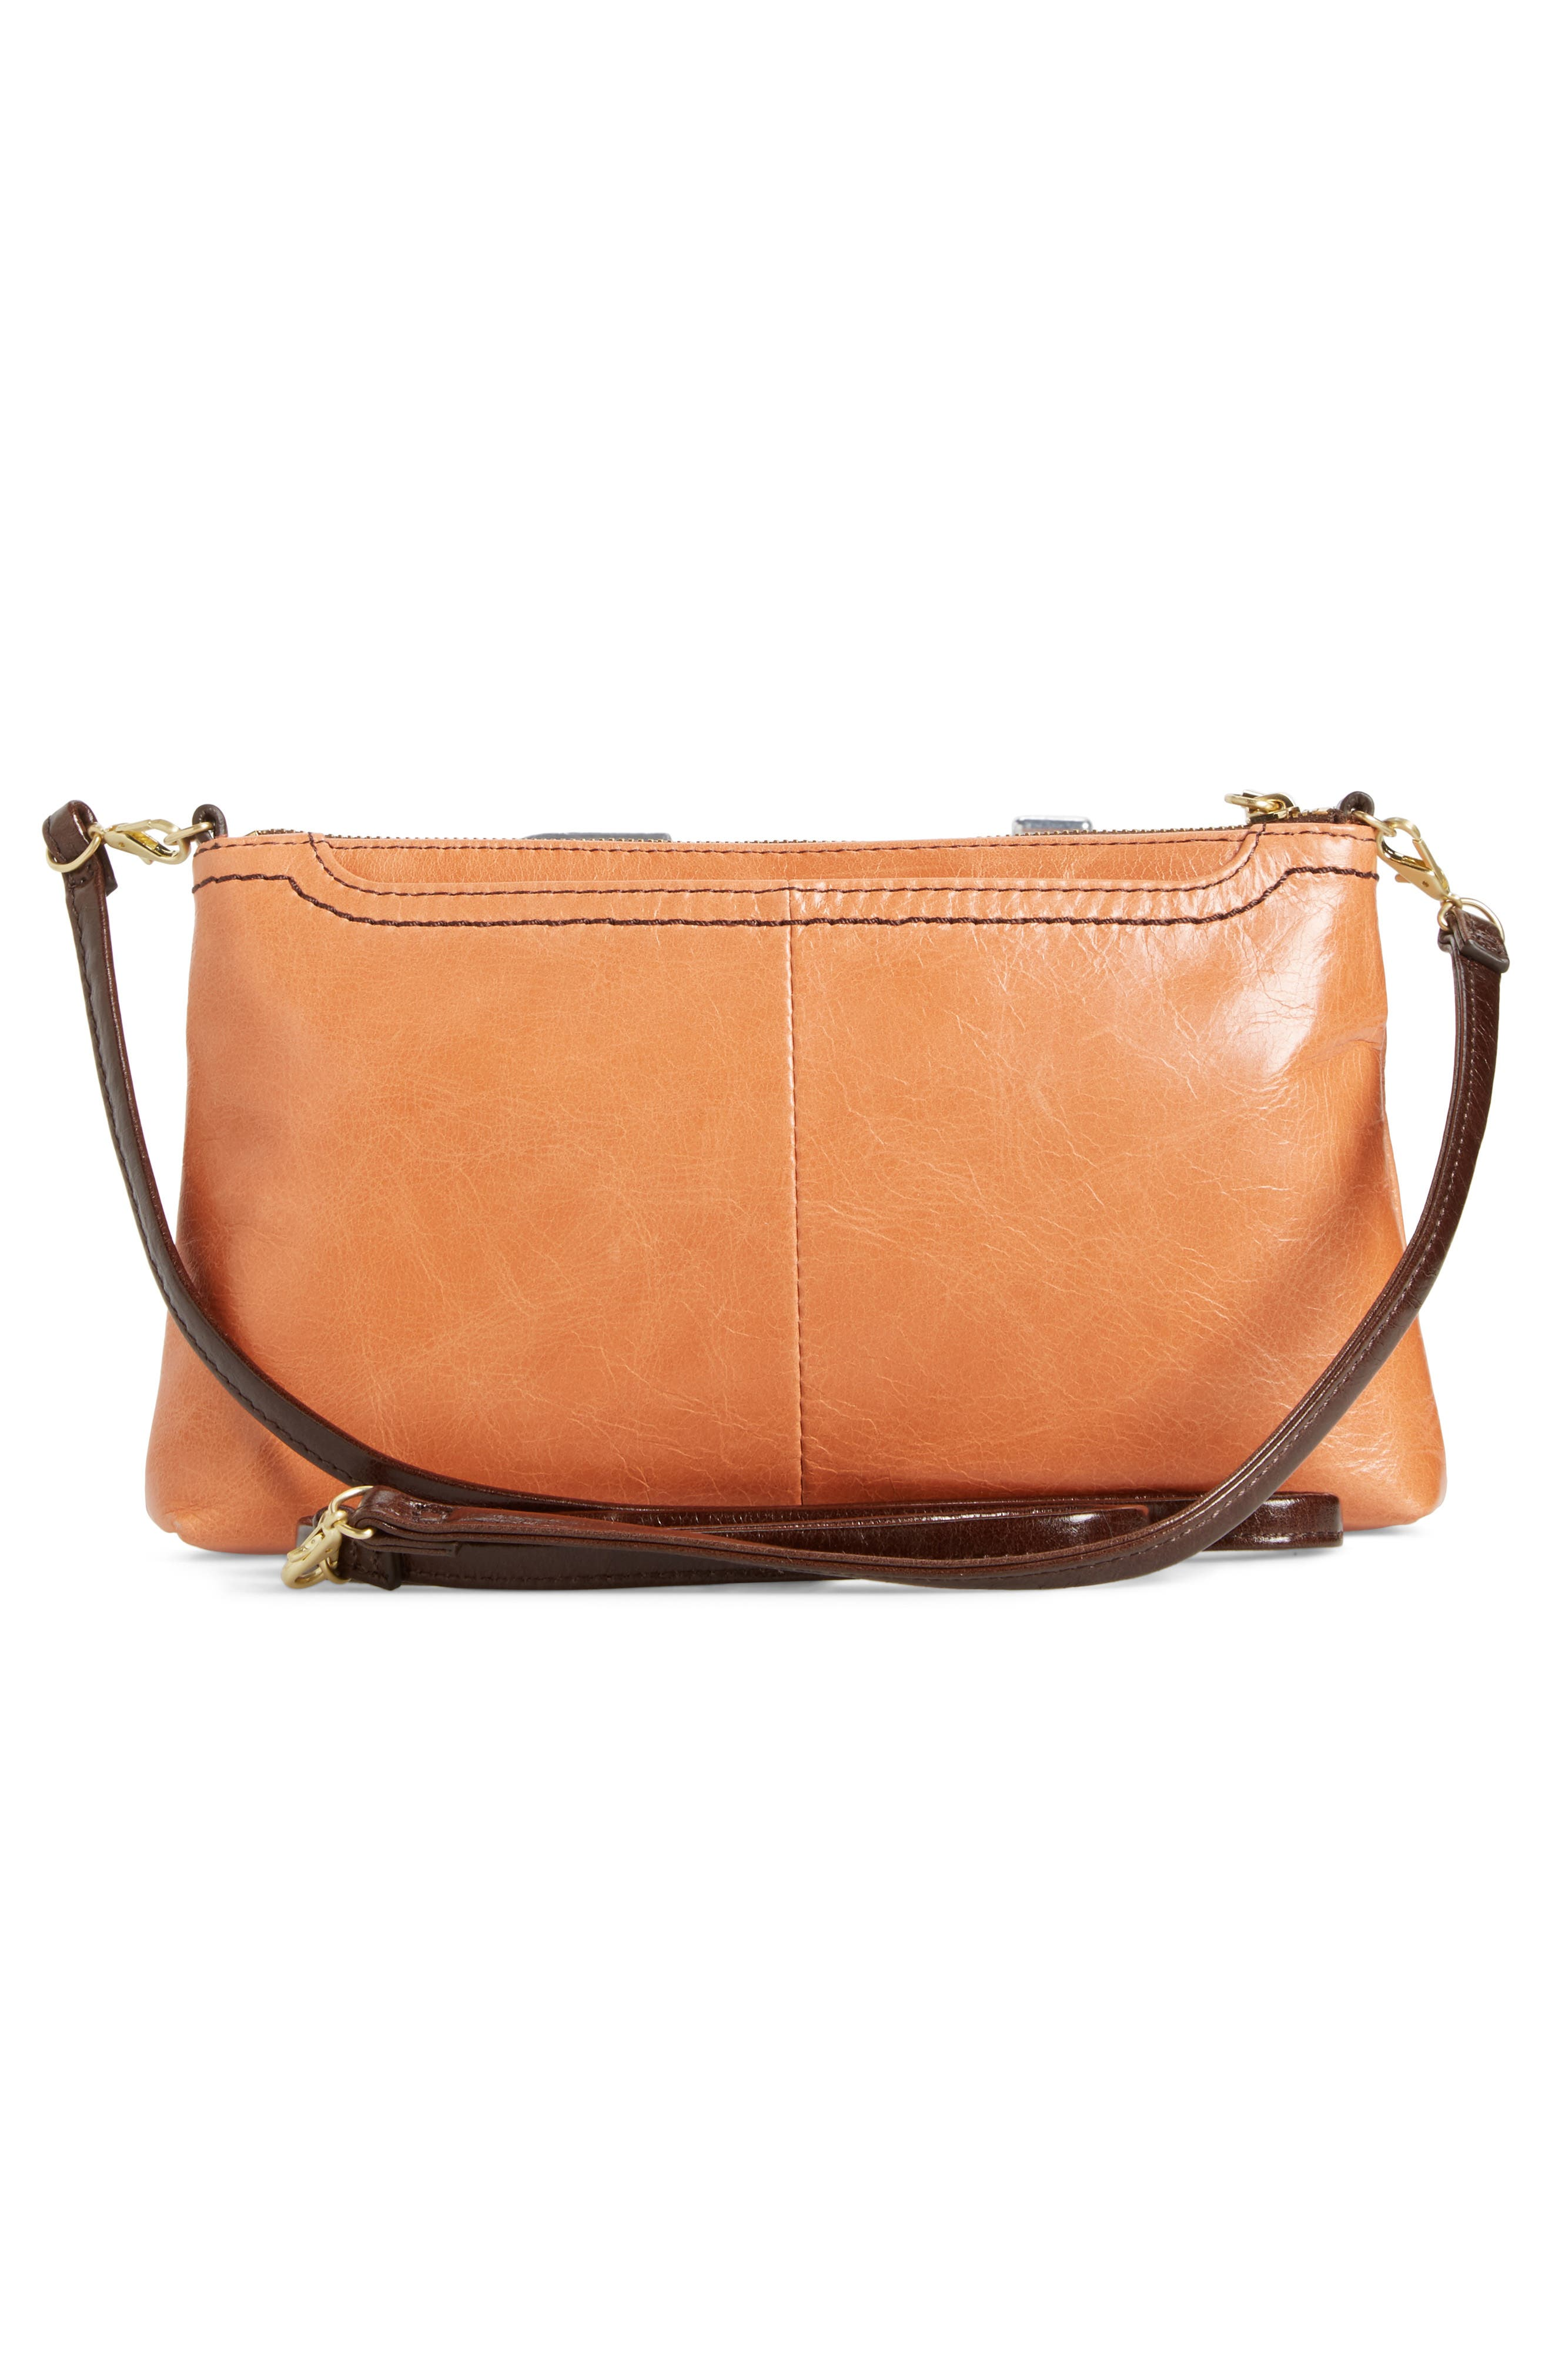 'Darcy' Leather Crossbody Bag,                             Alternate thumbnail 70, color,